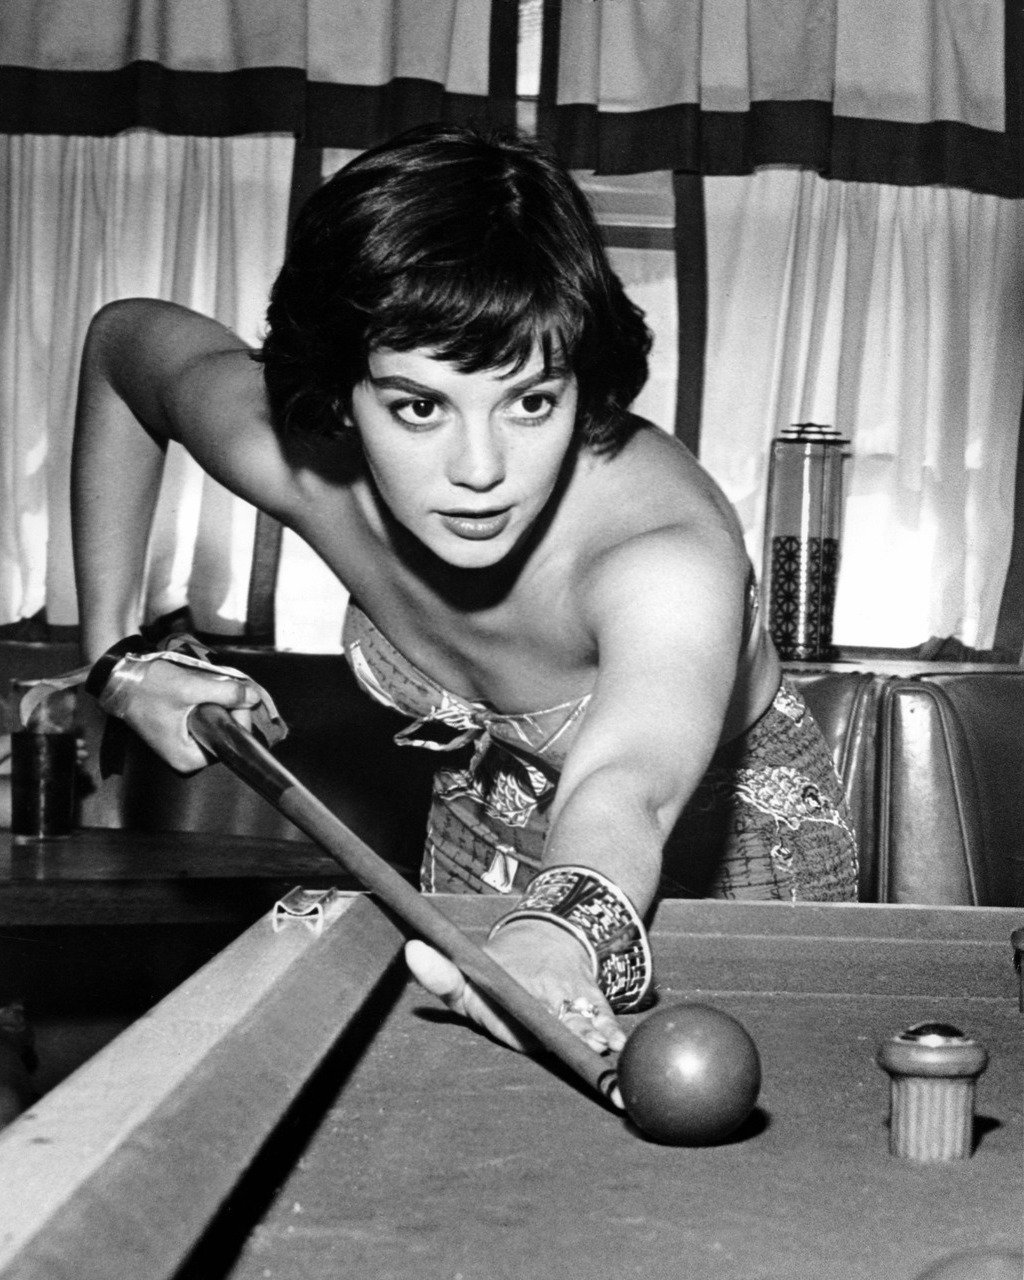 ACTRESS NATALIE WOOD SHOOTING POOL - 8X10 PUBLICITY PHOTO (ZY-446)